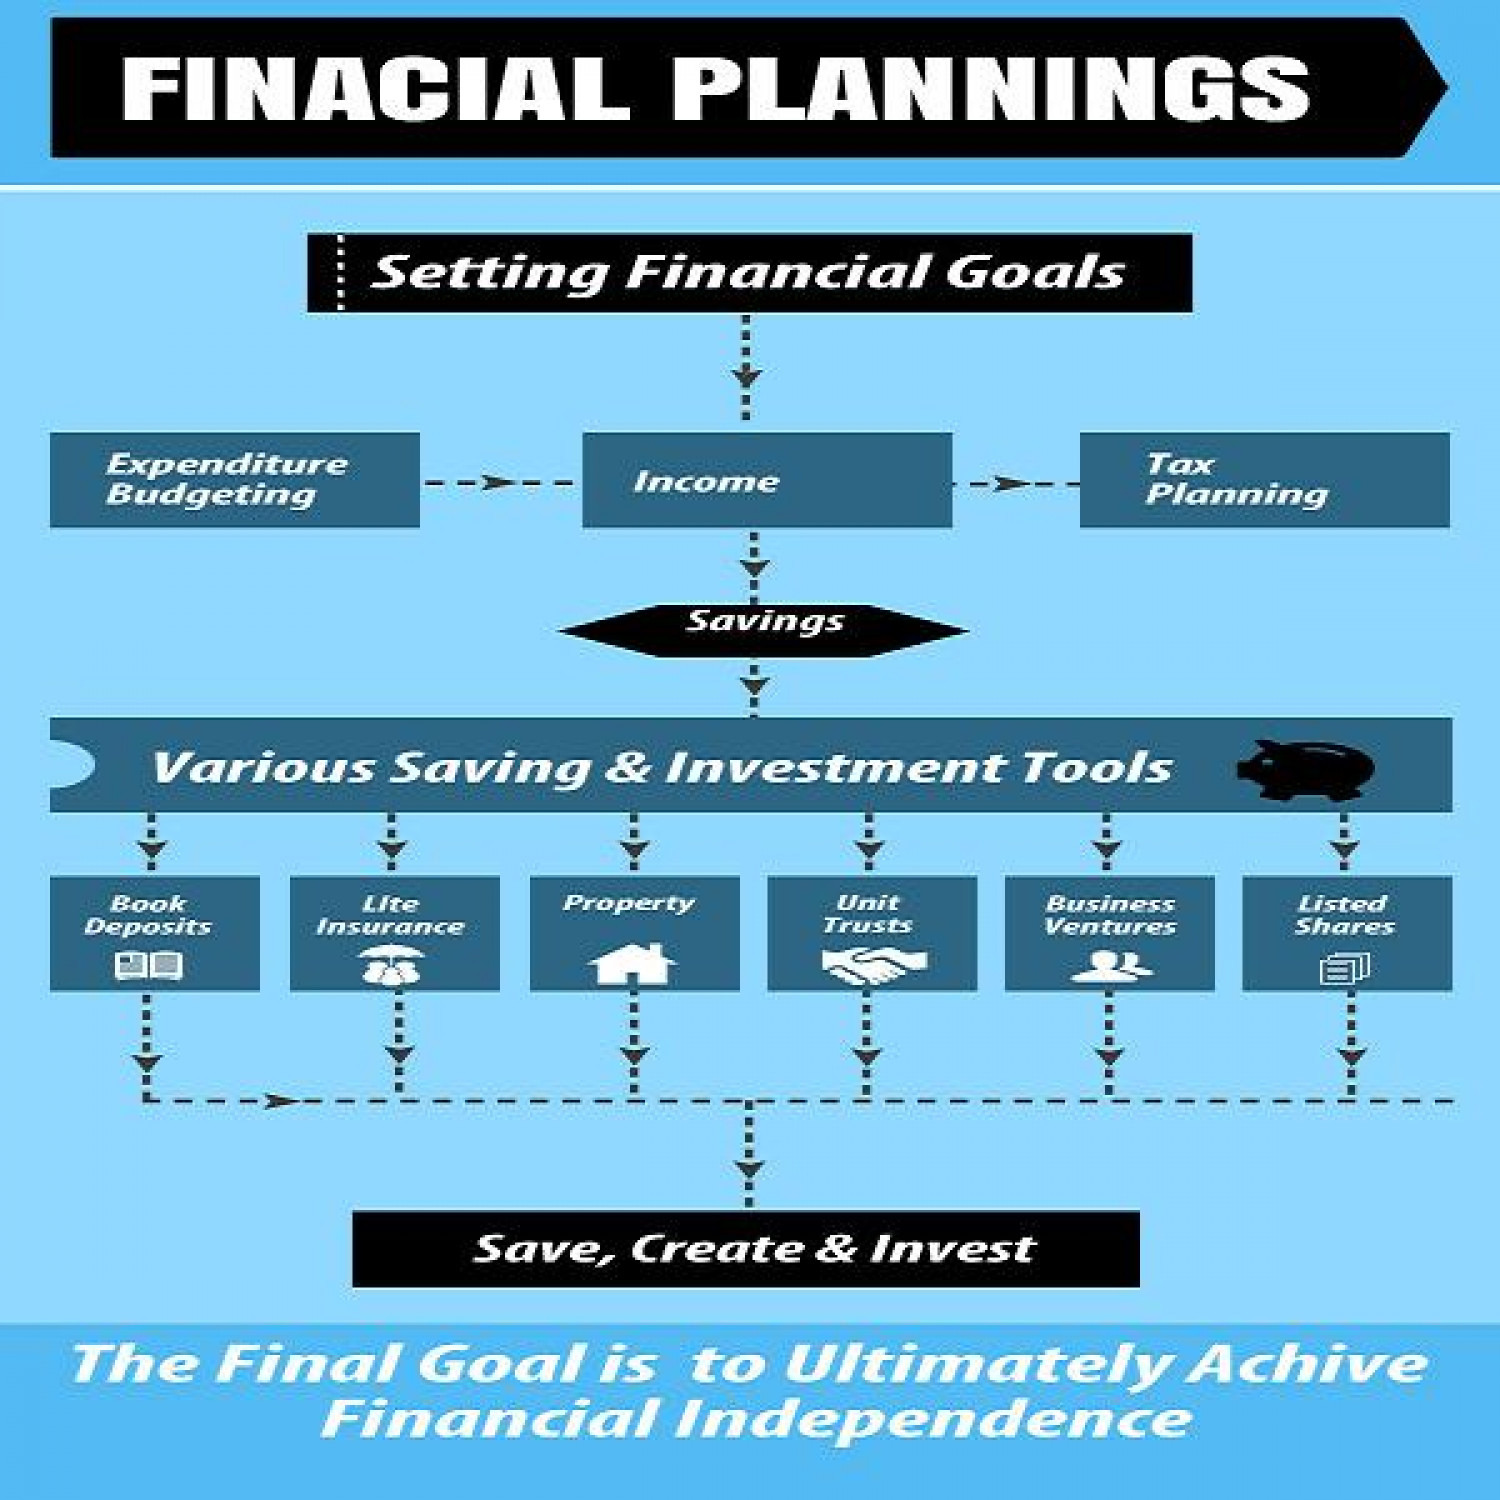 Financial Planning Infographic